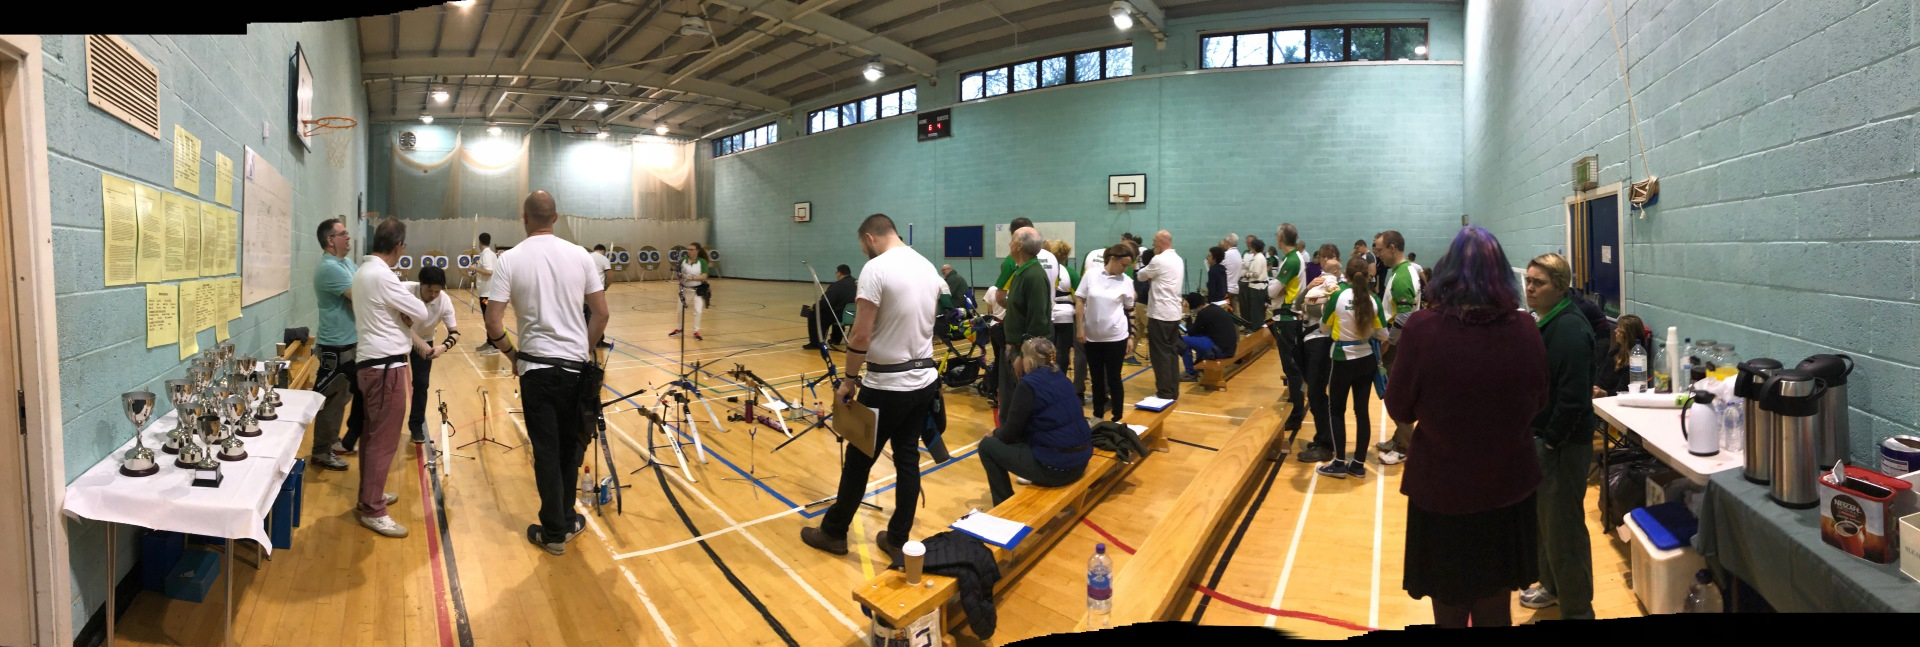 Lots of archers!!